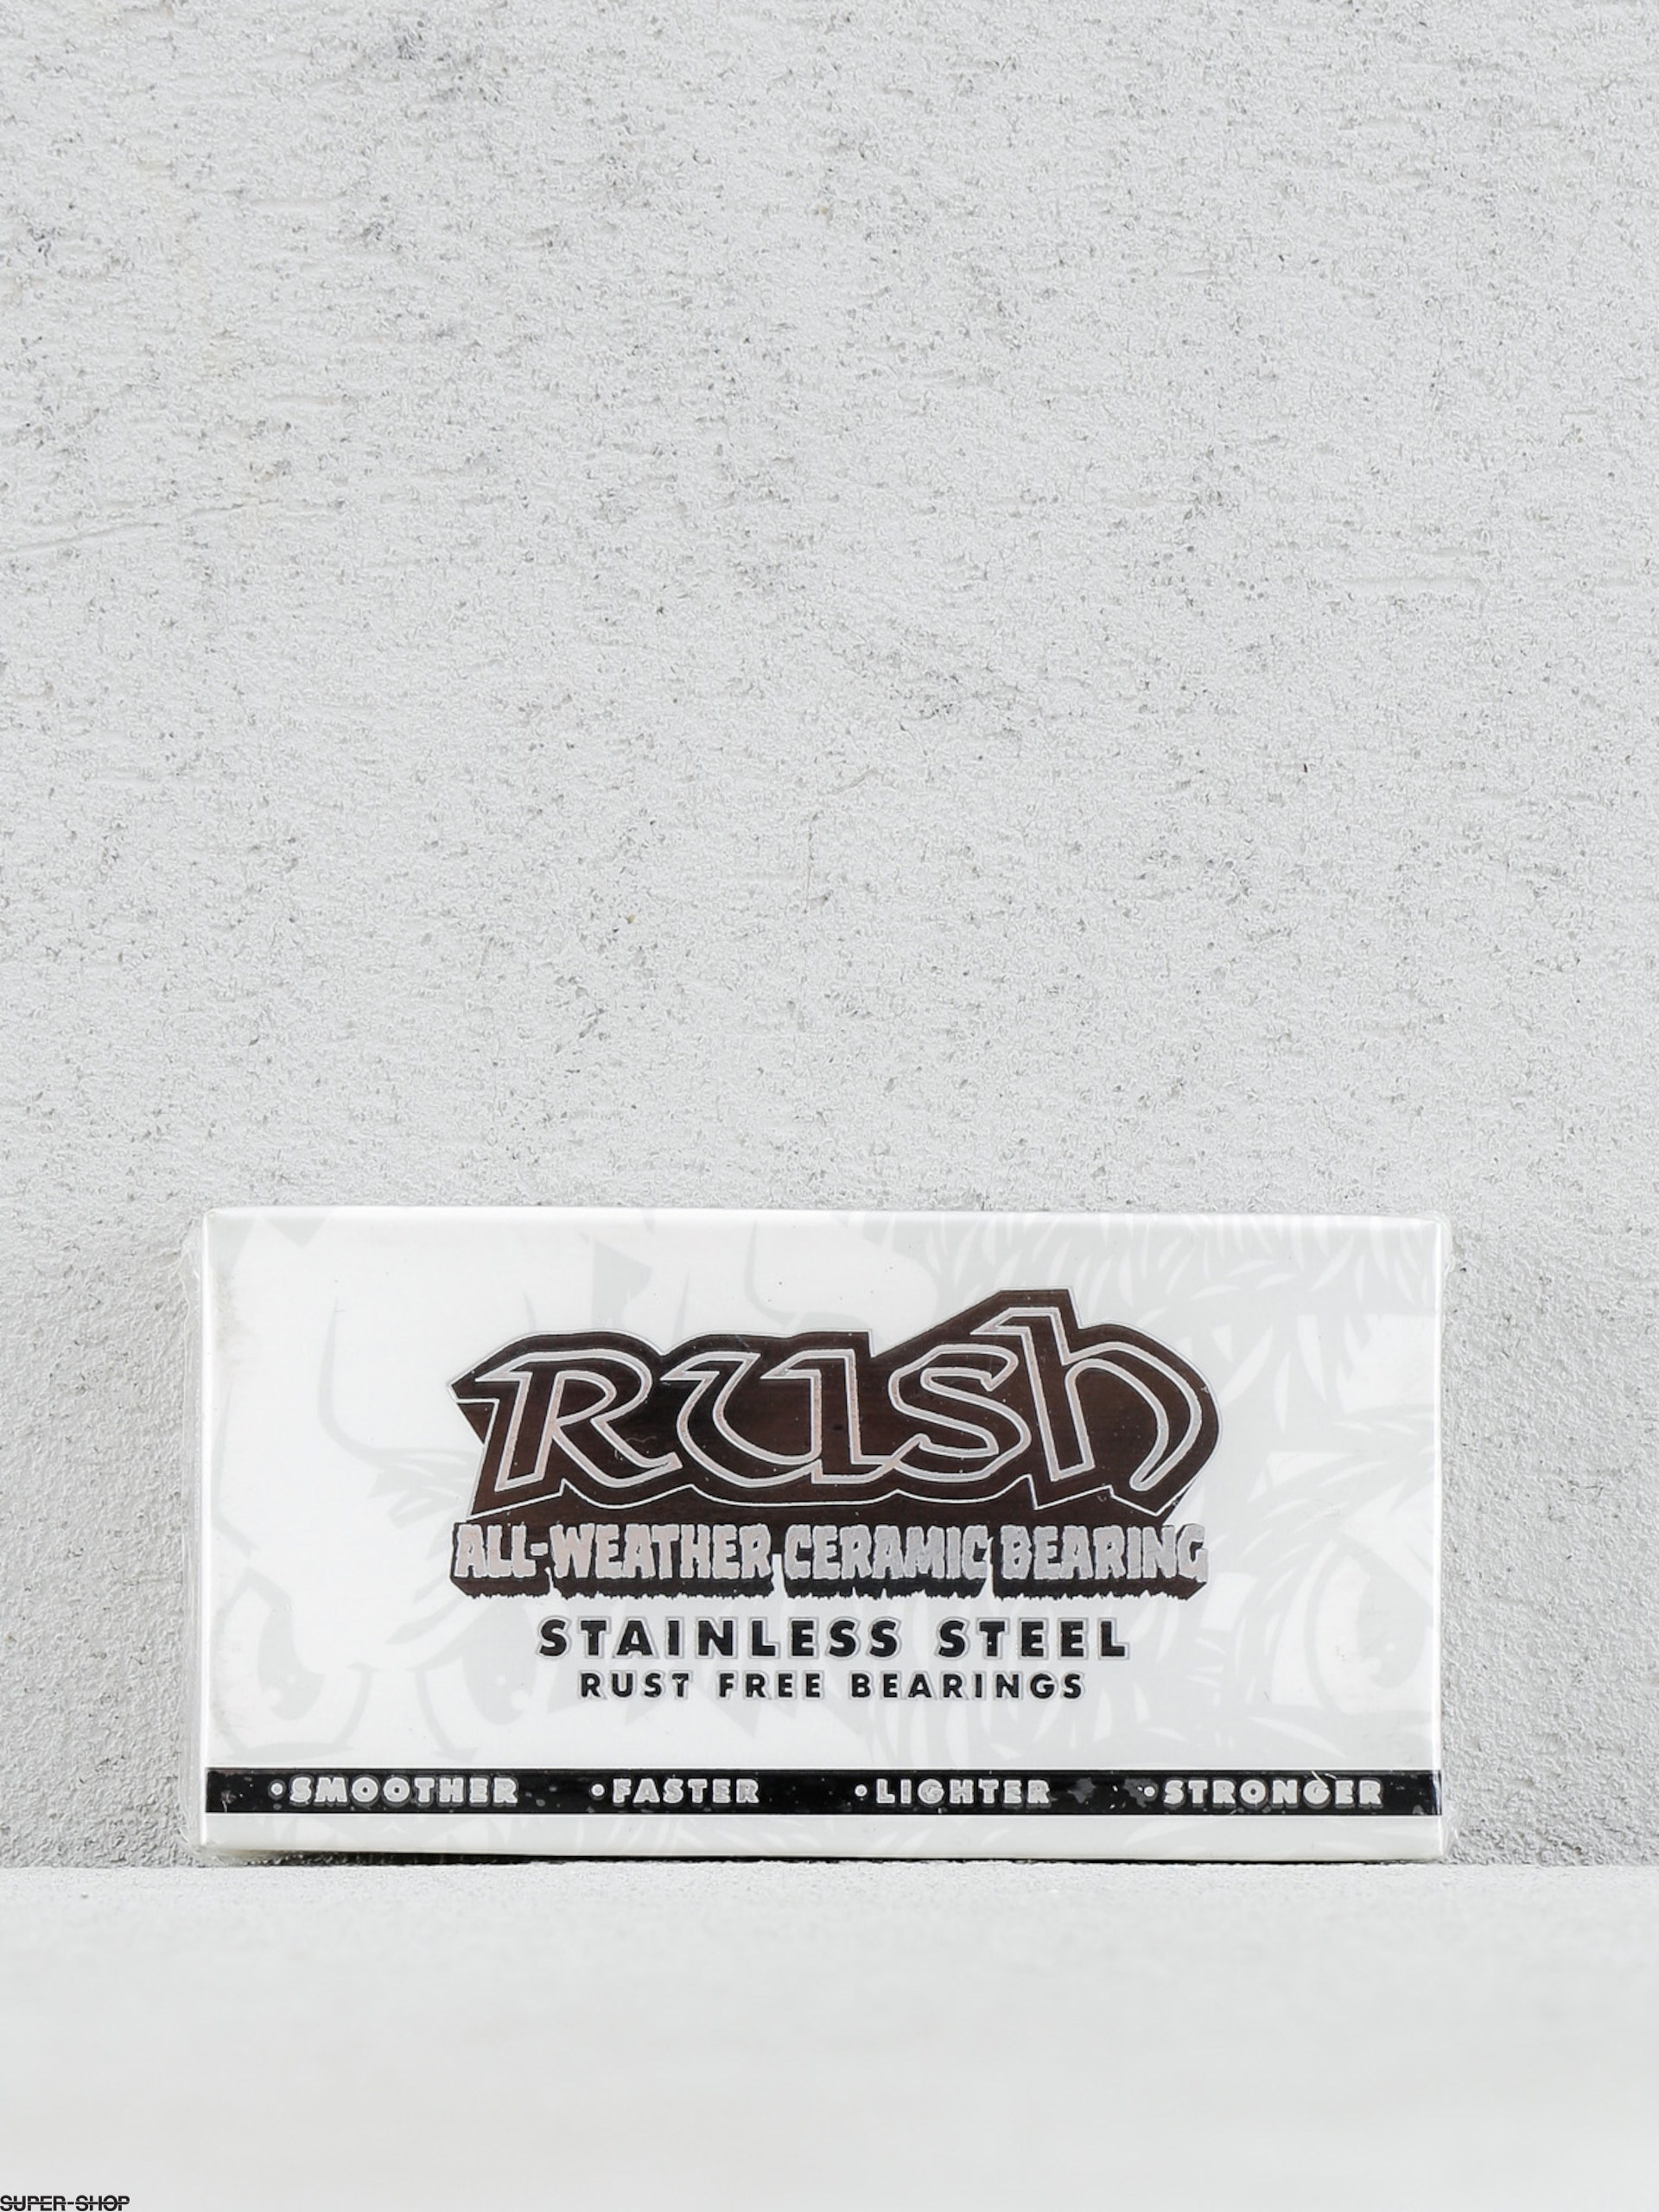 Rush Bearings Bearings Rush All-Weather Ceramic